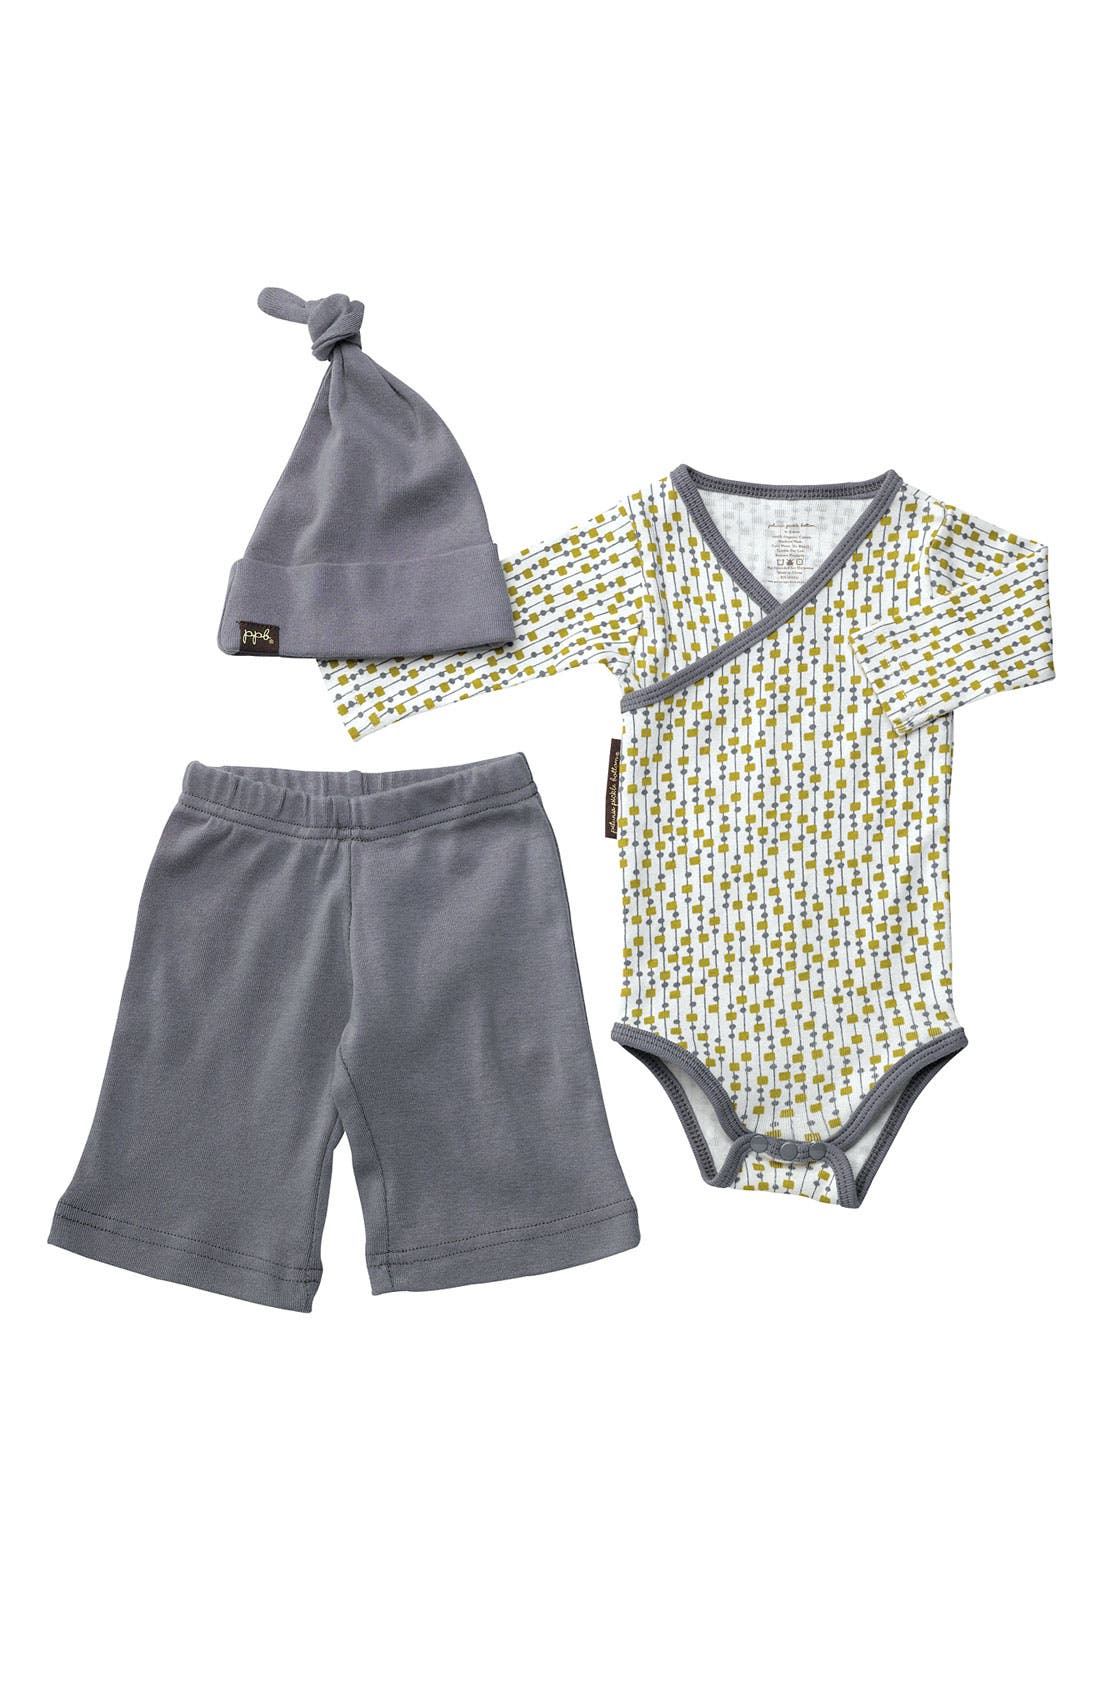 Main Image - Petunia Pickle Bottom 'Social' Hat, Bodysuit & Pants Set (Baby)